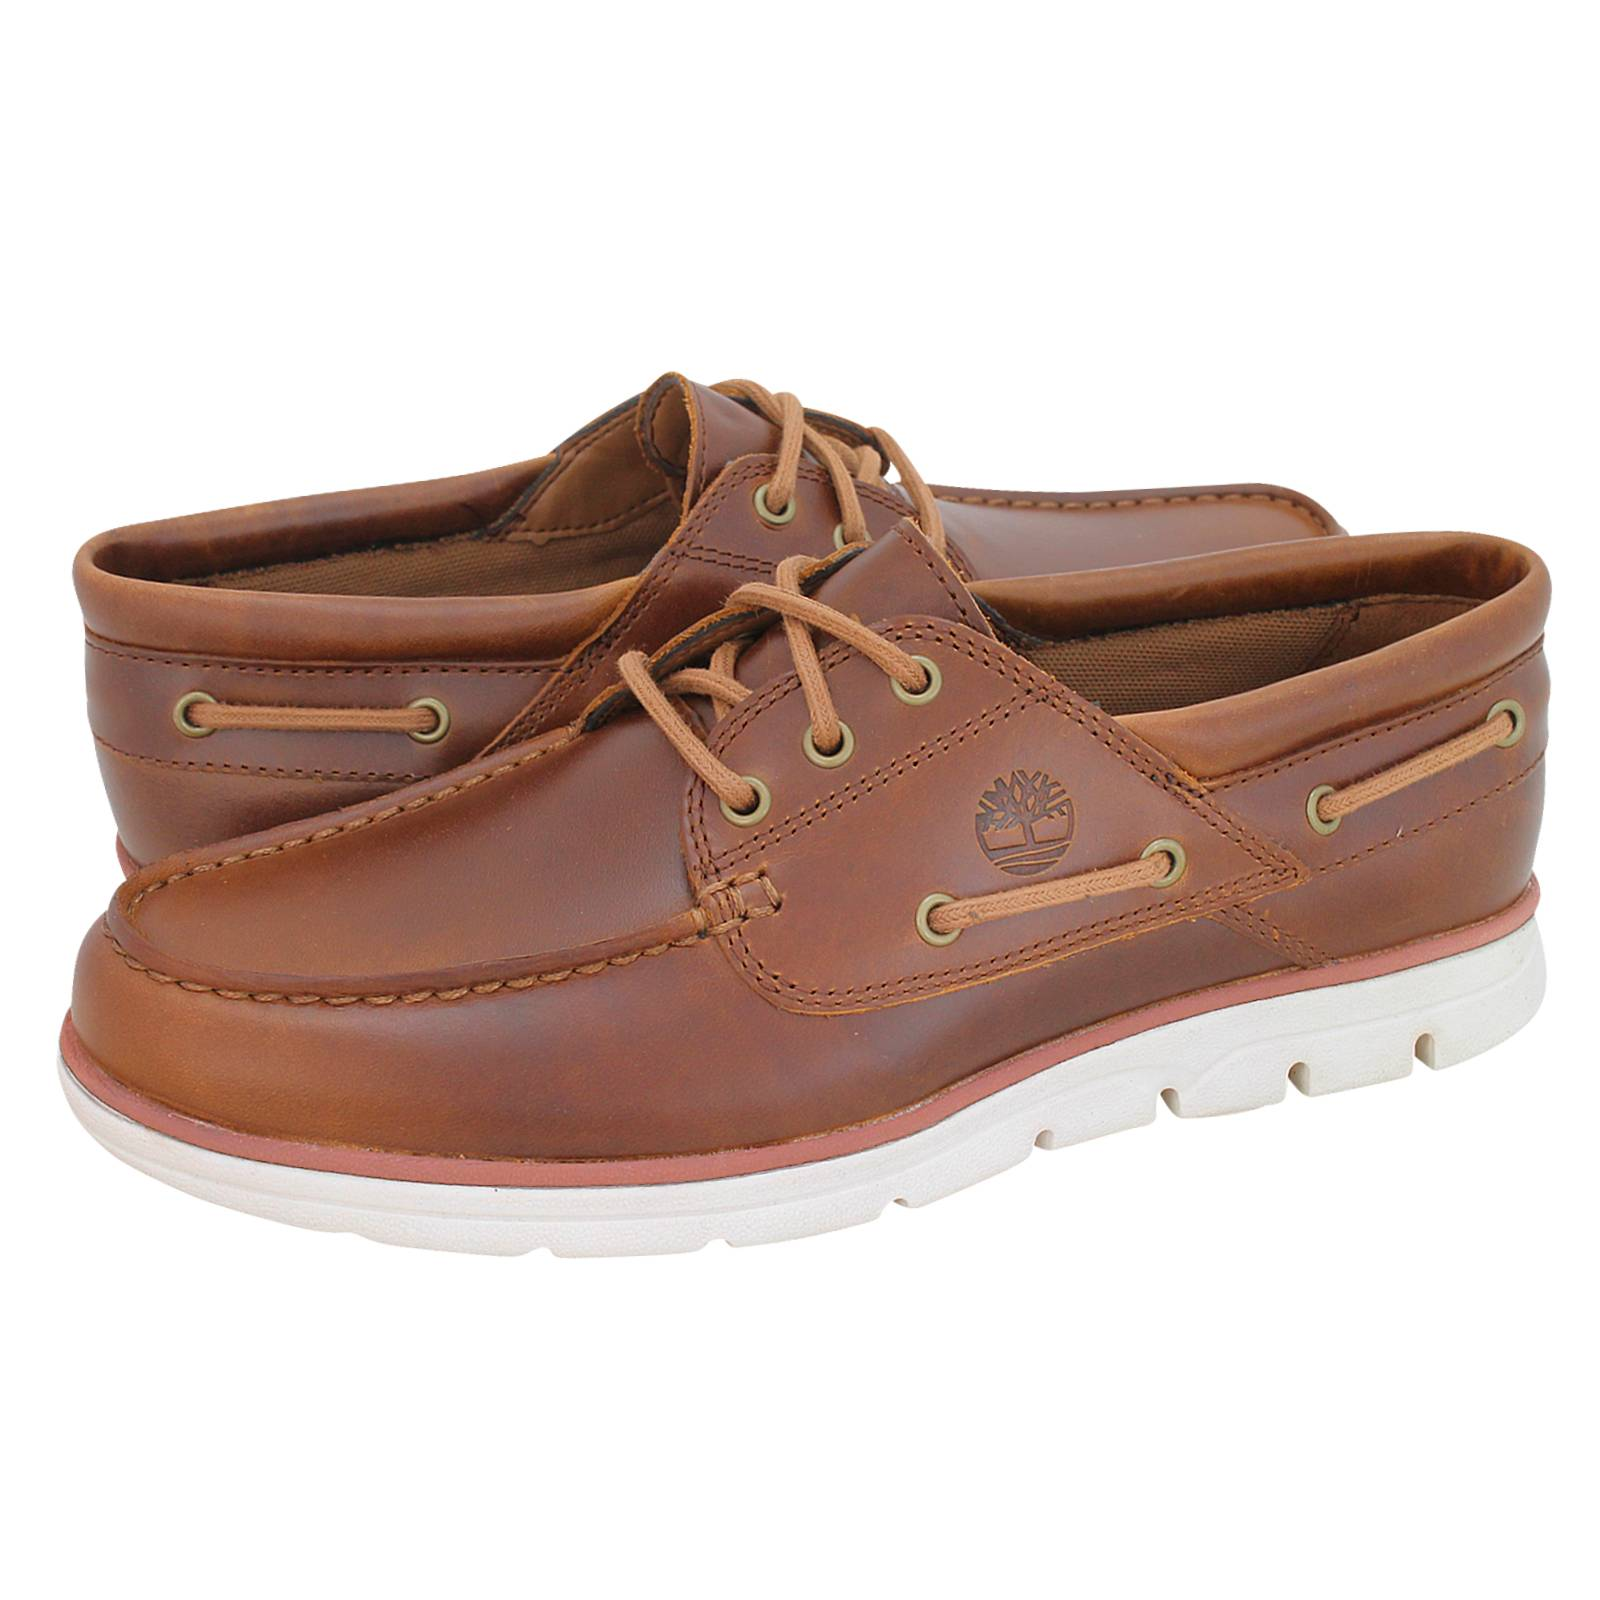 aed620f0bd99 Bradstreet 3 Eye Boat - Timberland Men s boat shoes made of leather ...